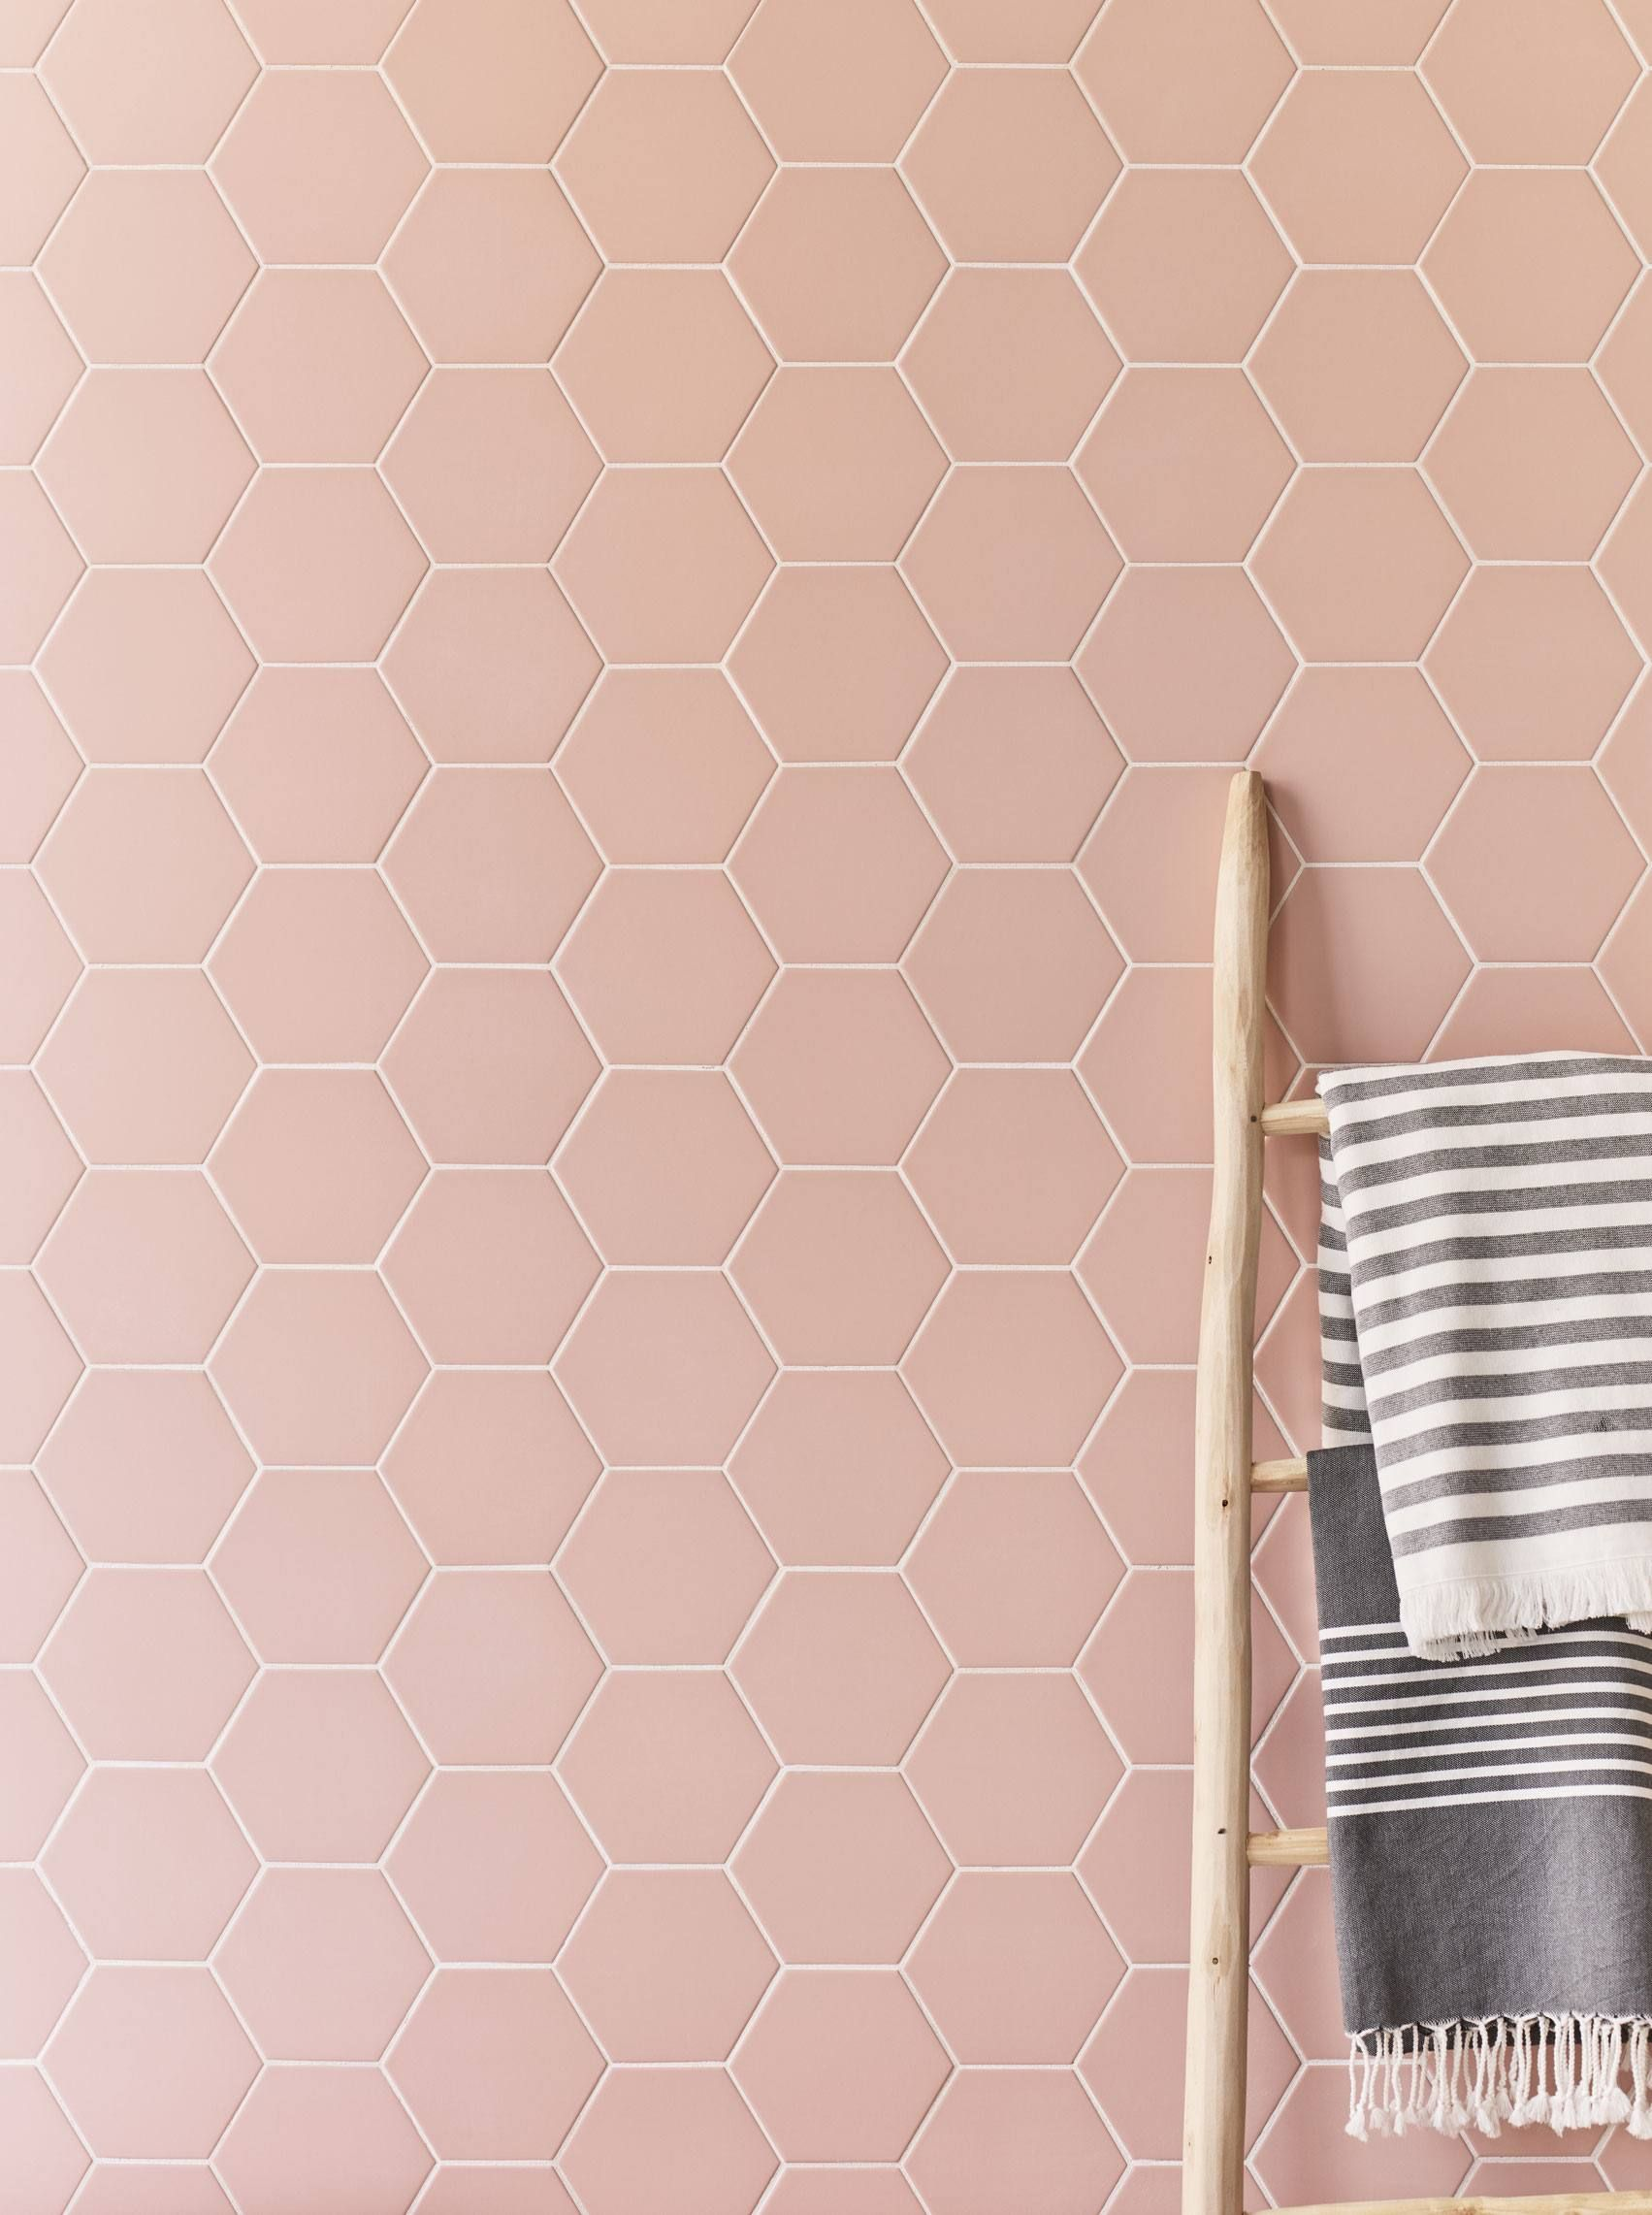 Hayek Hex Blush Bathroom Wall Tile Hex Tiles Bathroom Porcelain Flooring